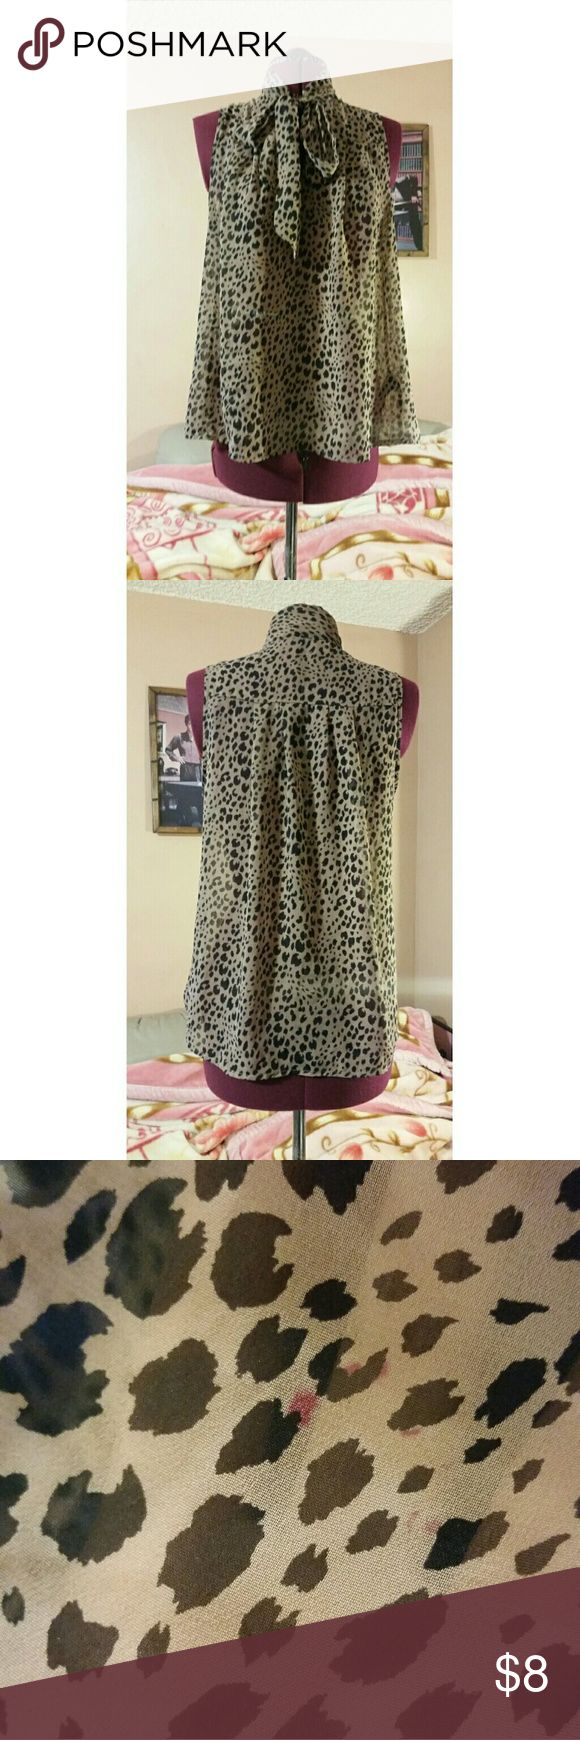 Forever 21 Leopard Print Loose Fitting Top VLV Leopard Print Loose Top W. Tie At Neck  *See Through, No Stretch, Loose Fitting, Has Collar, Has Ties For Decorative Bow At Neckline, Sleeveless!*  Only Flaw, Red Dots Done With Marker, Baby Nephew Accidently Made. Idk How To Remove It, Not Noticeable When Worn* Forever 21 Tops